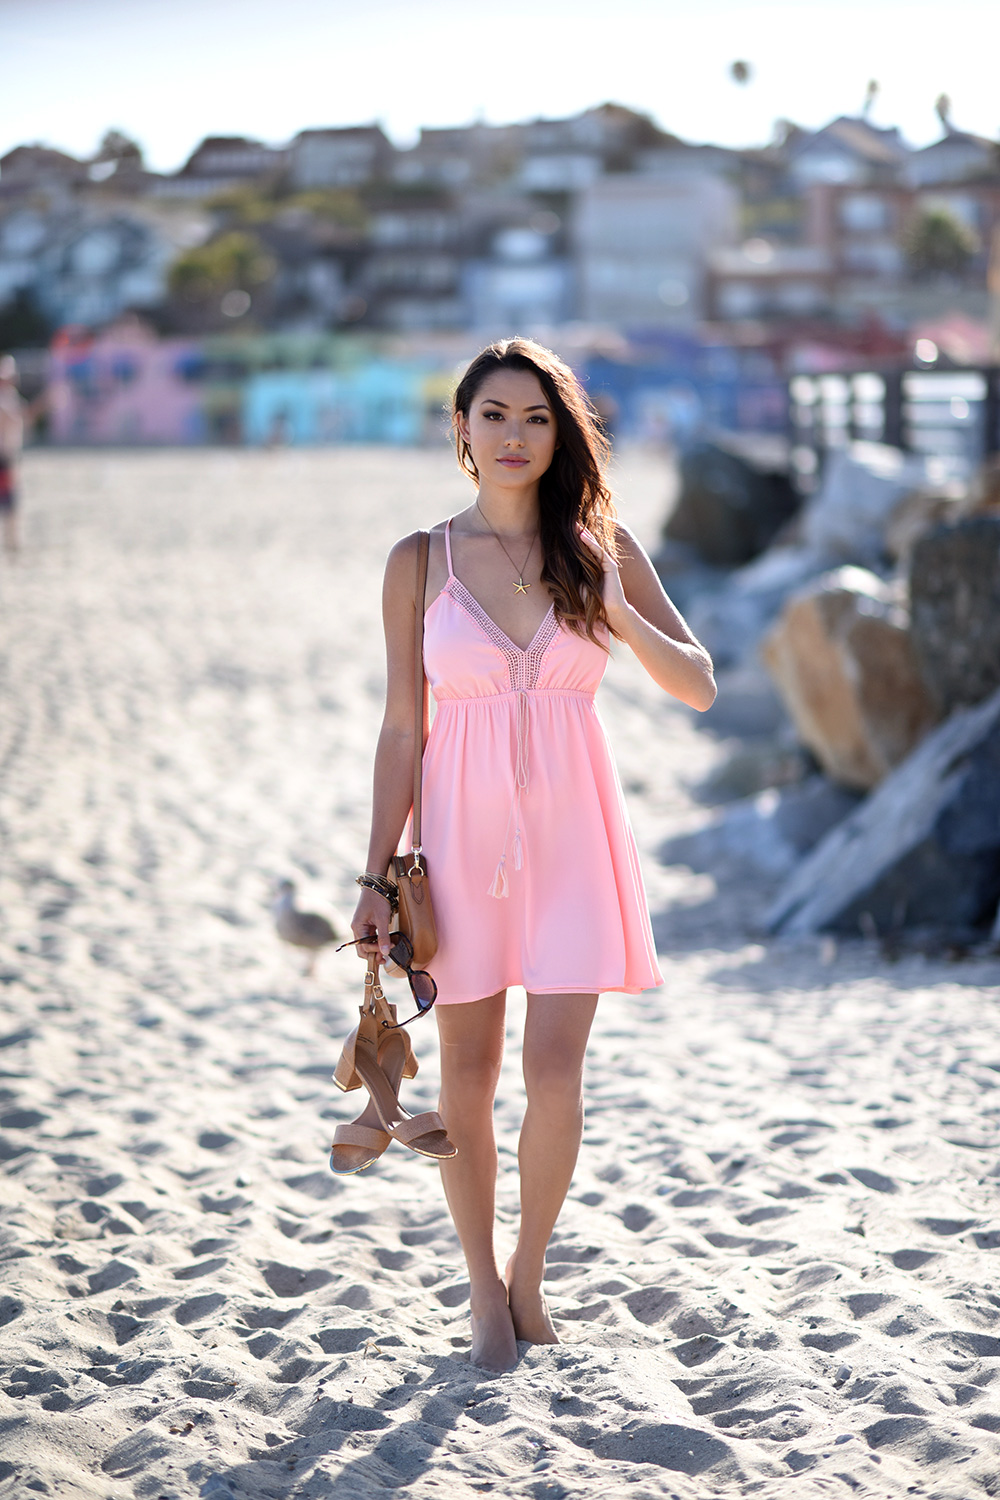 a046808c91e7b Jessica R. looks adorable in this super cute blush pink beach dress, with  tassel